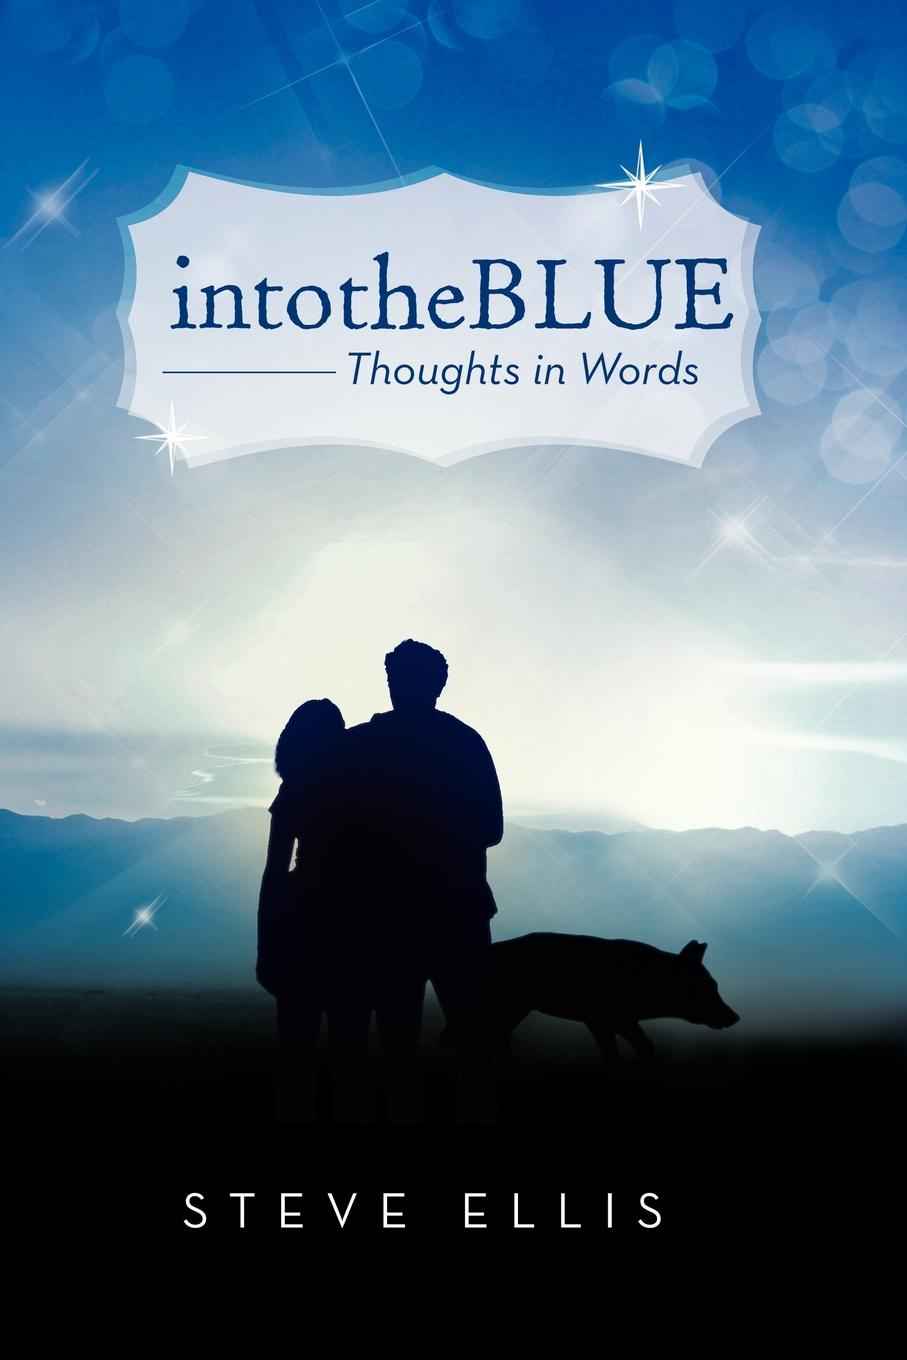 цена Steve Ellis intotheBlue. Thoughts in Words в интернет-магазинах